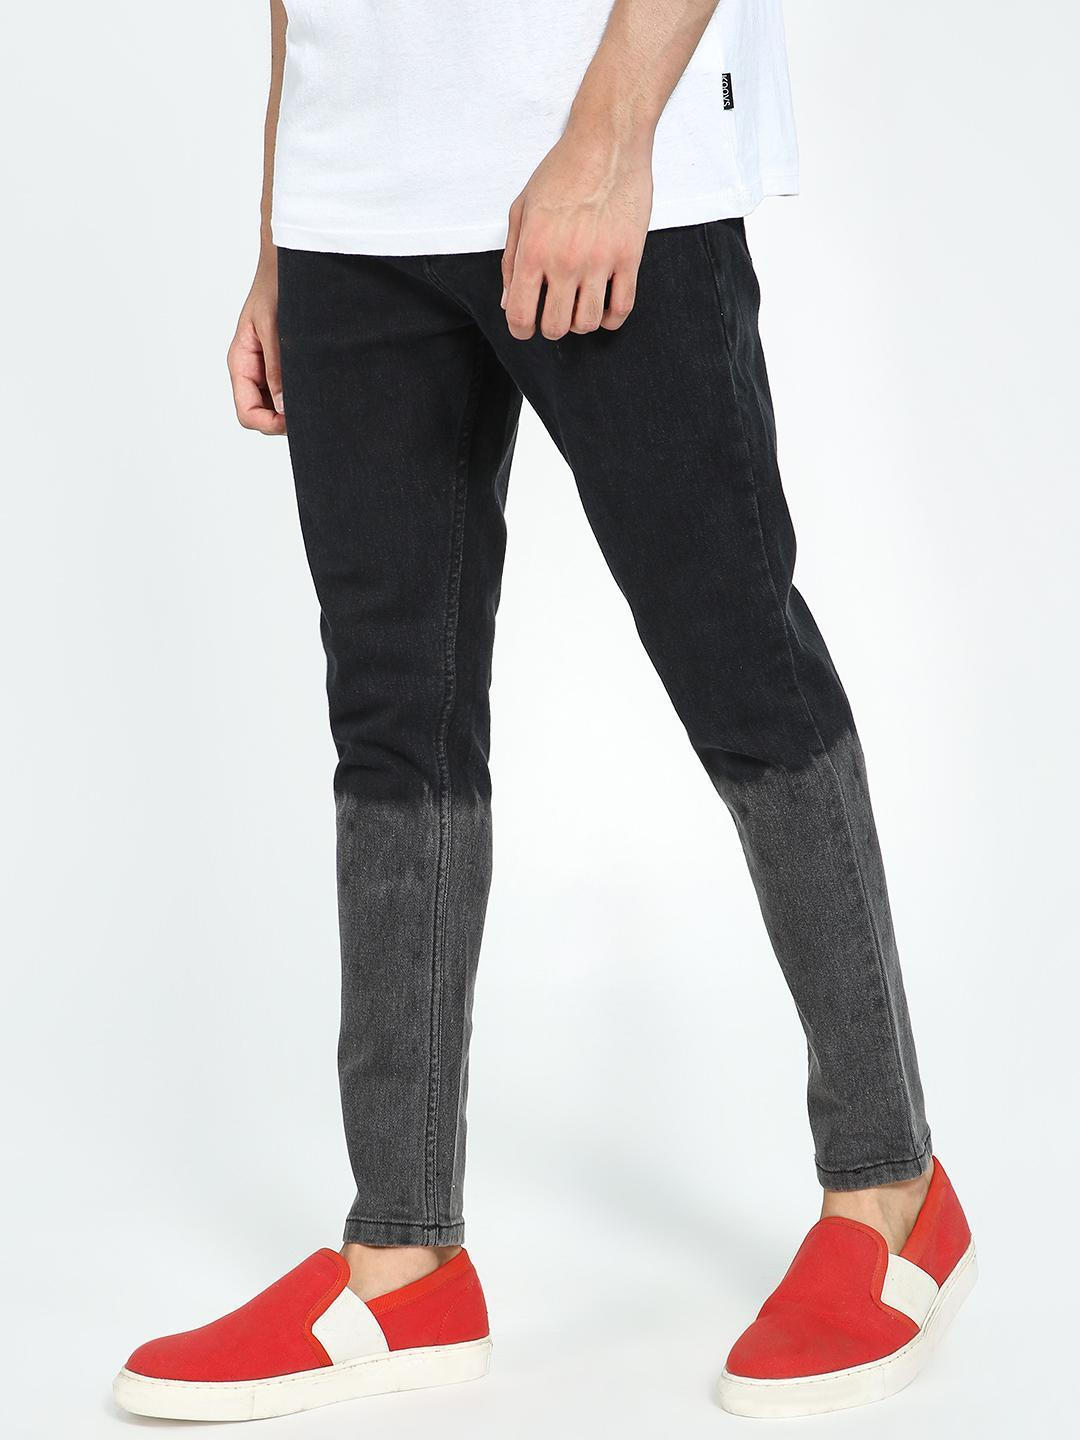 TRUE RUG Black Ombre Effect Slim Jeans 1